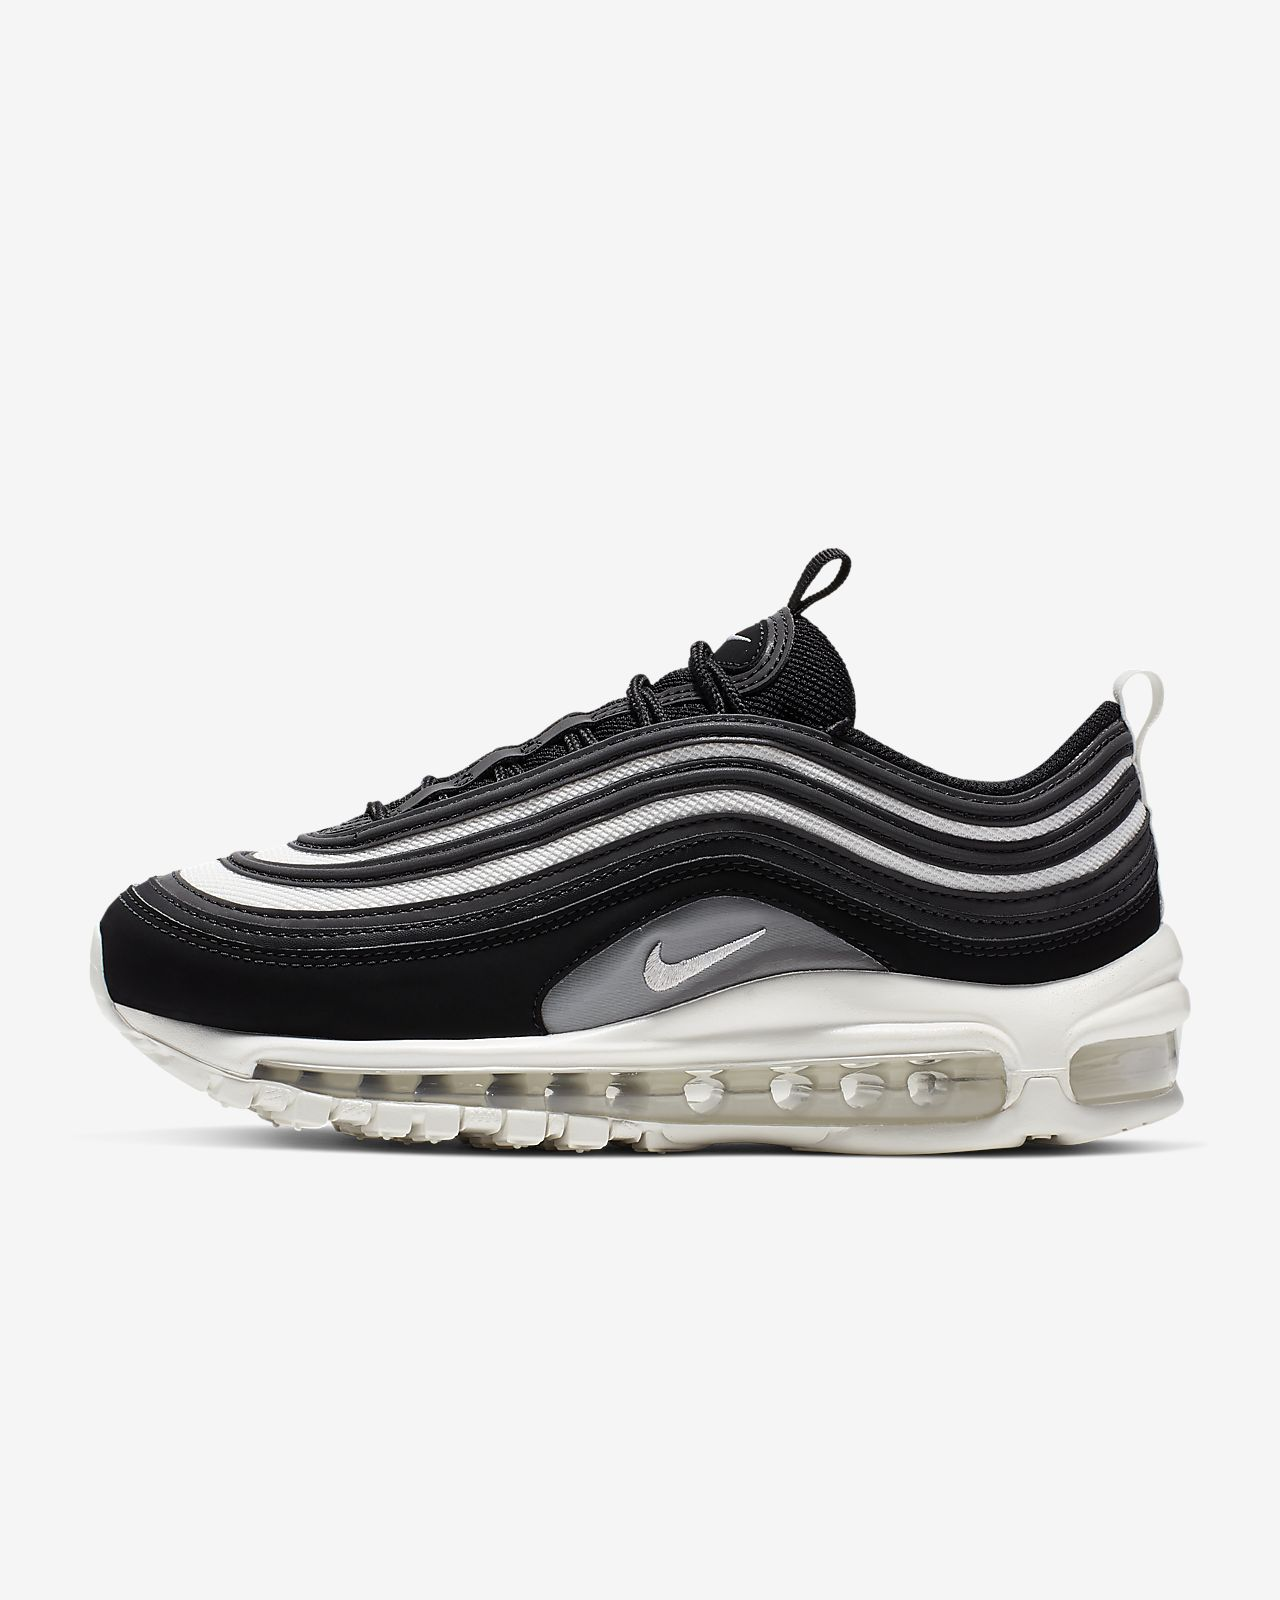 Colored Method (s) Nike Womens Air Max 97 Ultra '17 Trainer